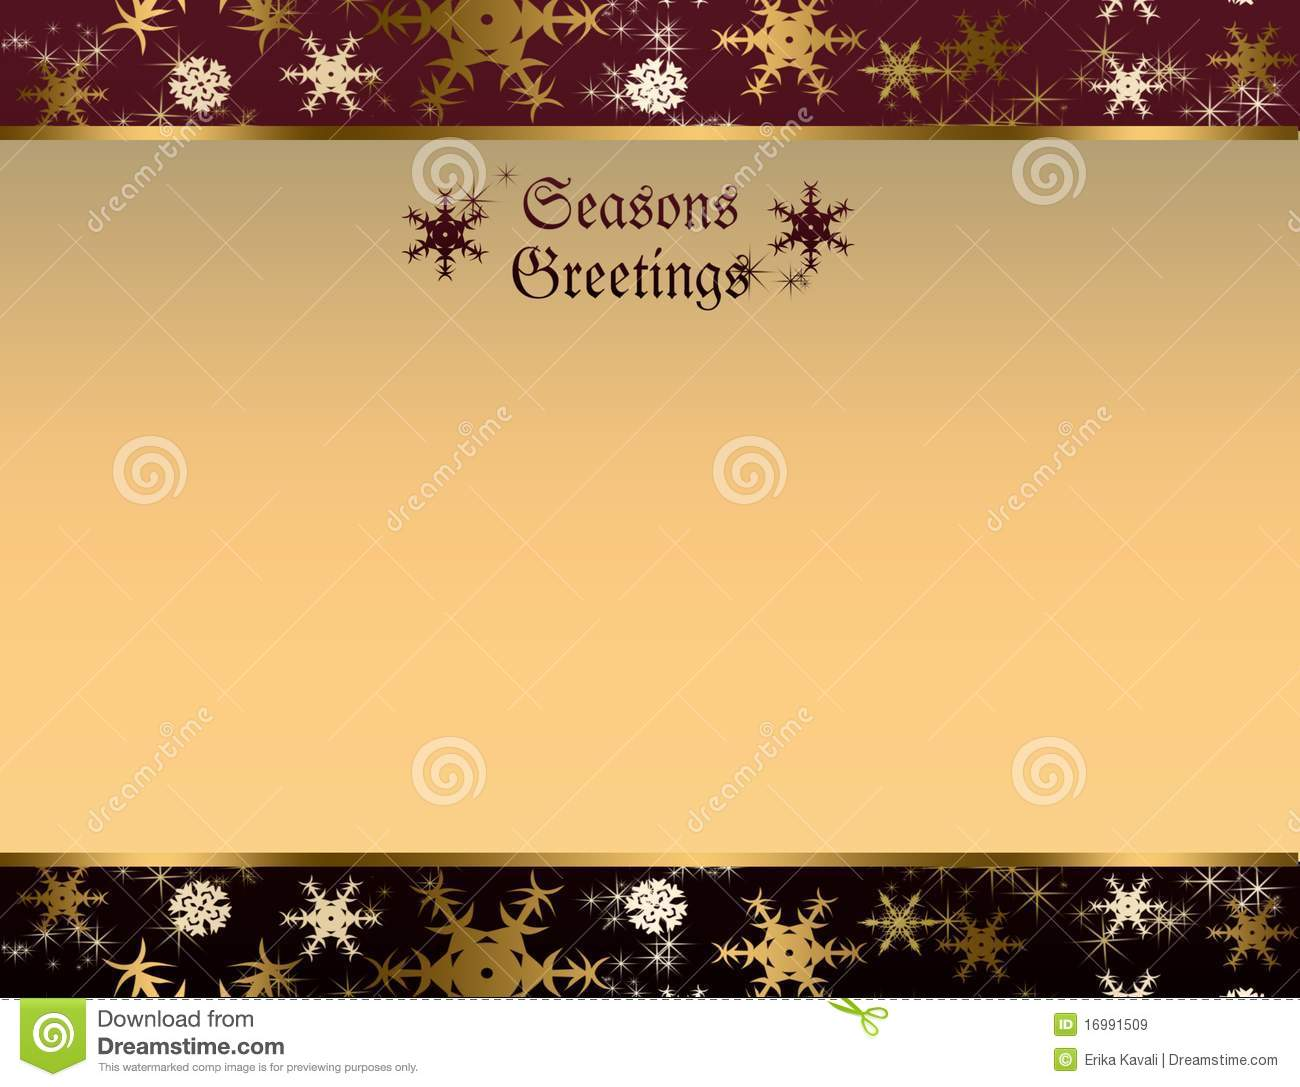 Seasons greetings background stock illustration illustration of seasons greetings background kristyandbryce Gallery